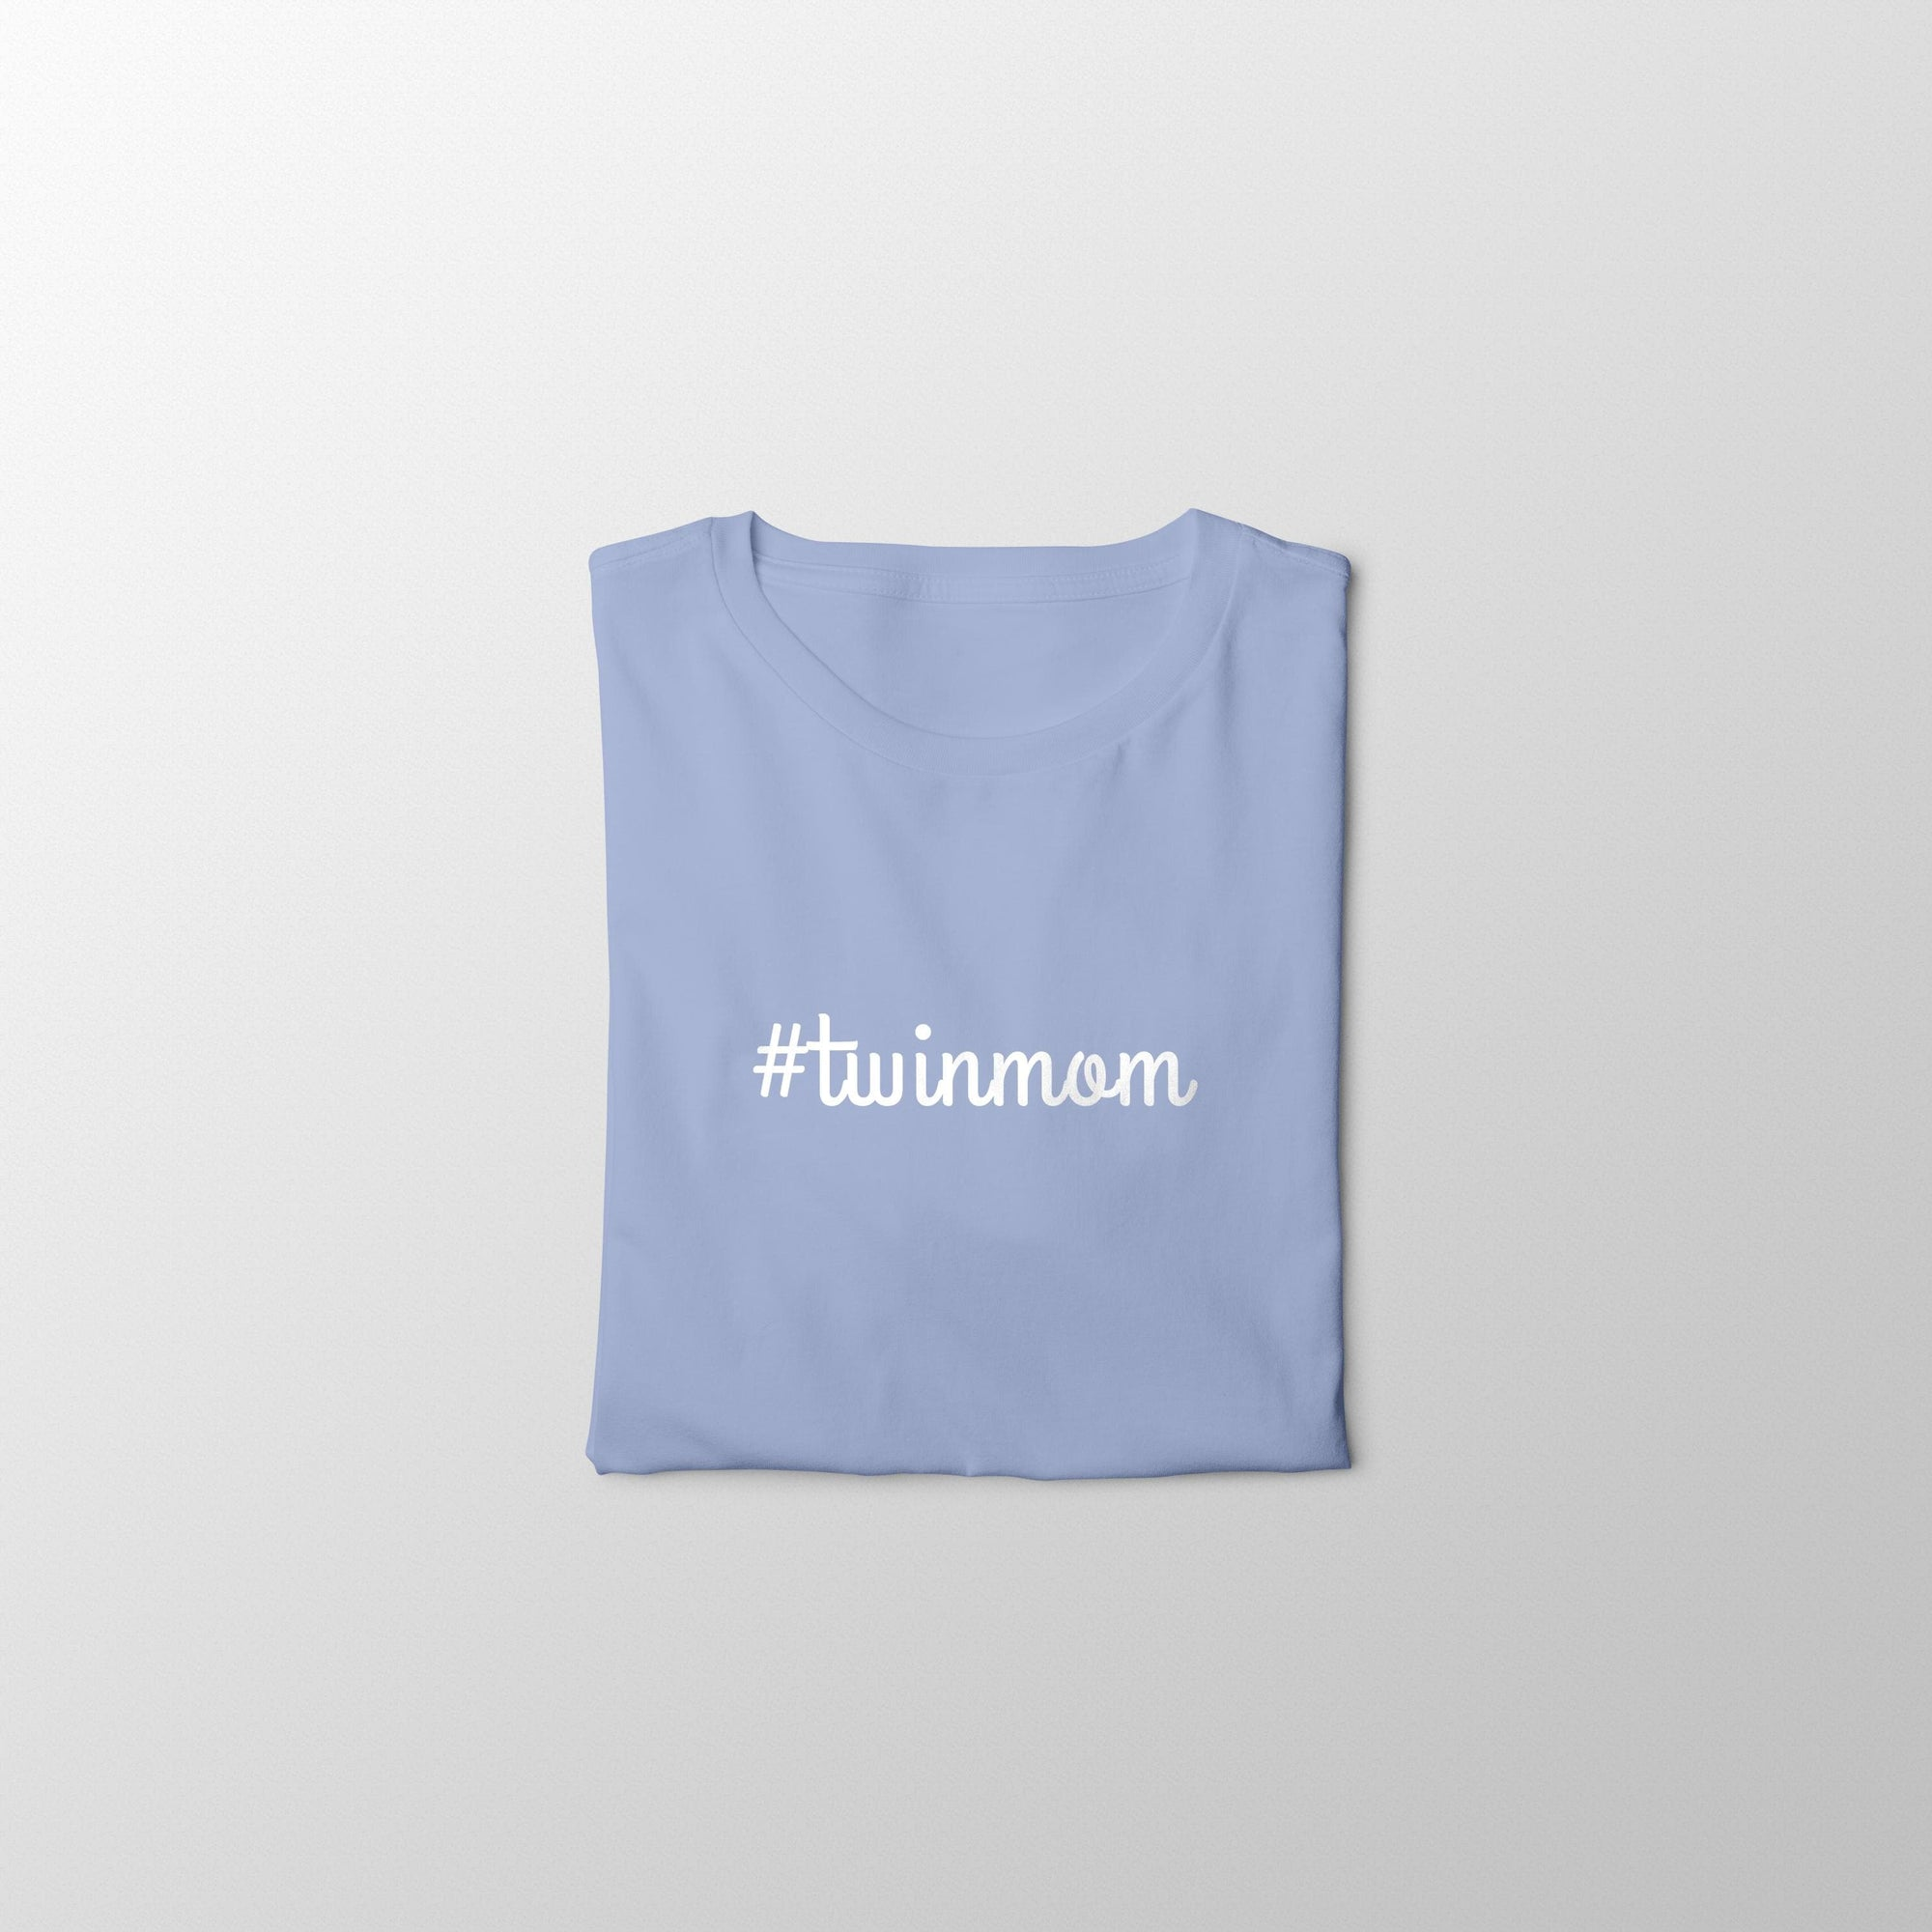 #Twinmom T-shirt (Light Blue)